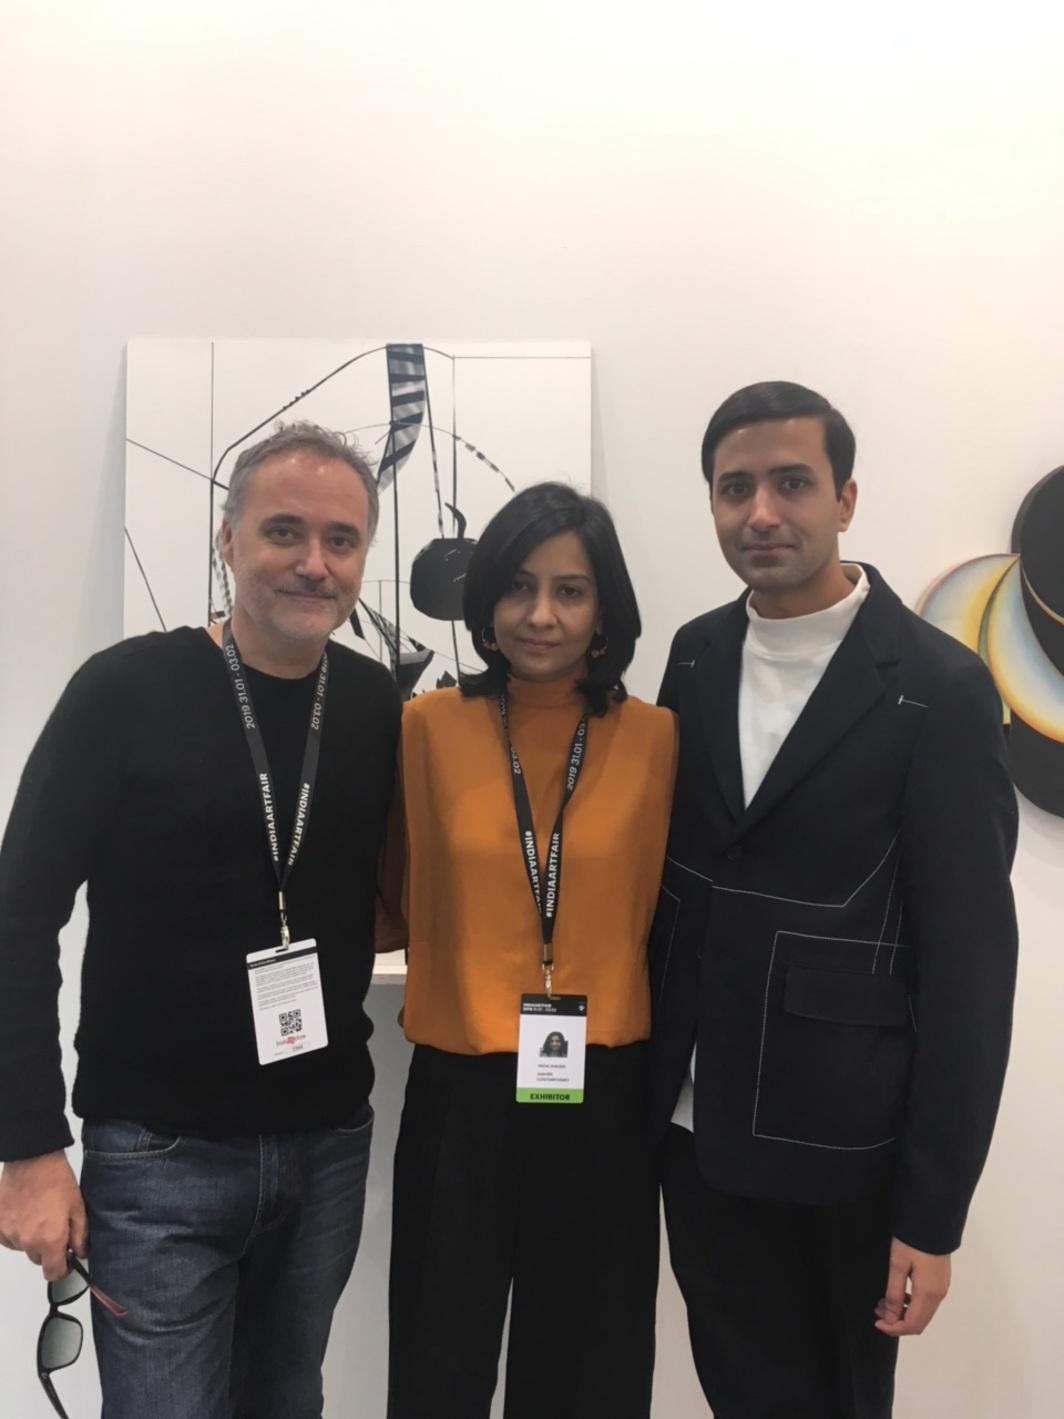 Artist Mark Prime with dealer Priya Jhaveri and curator Shanay Jhaveri.